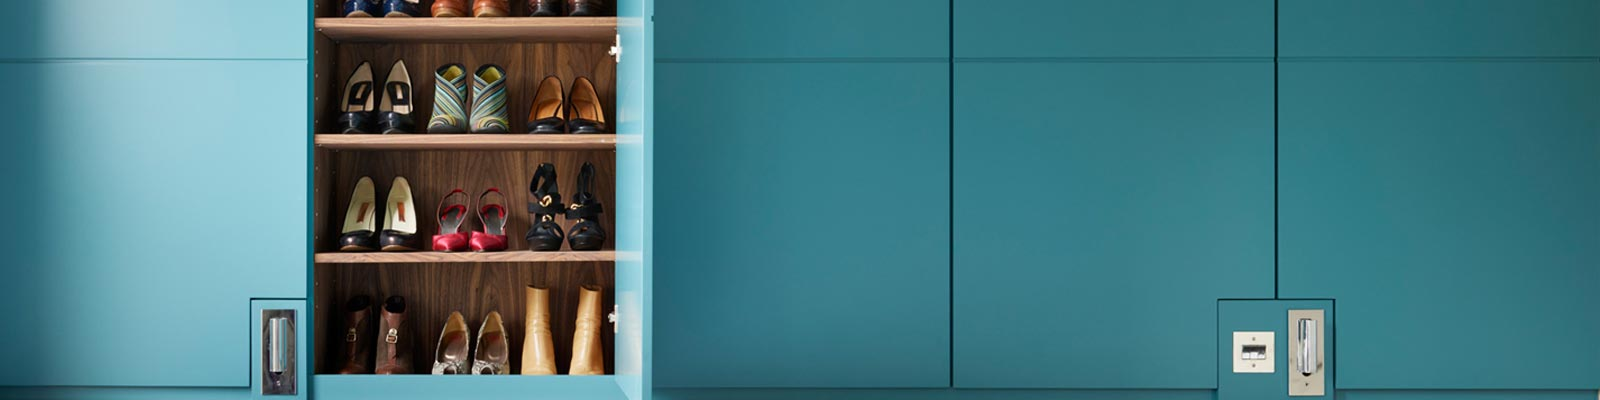 Ensoul WC Built in wardrobes shoe storage bespoke cabinetry walnut teal